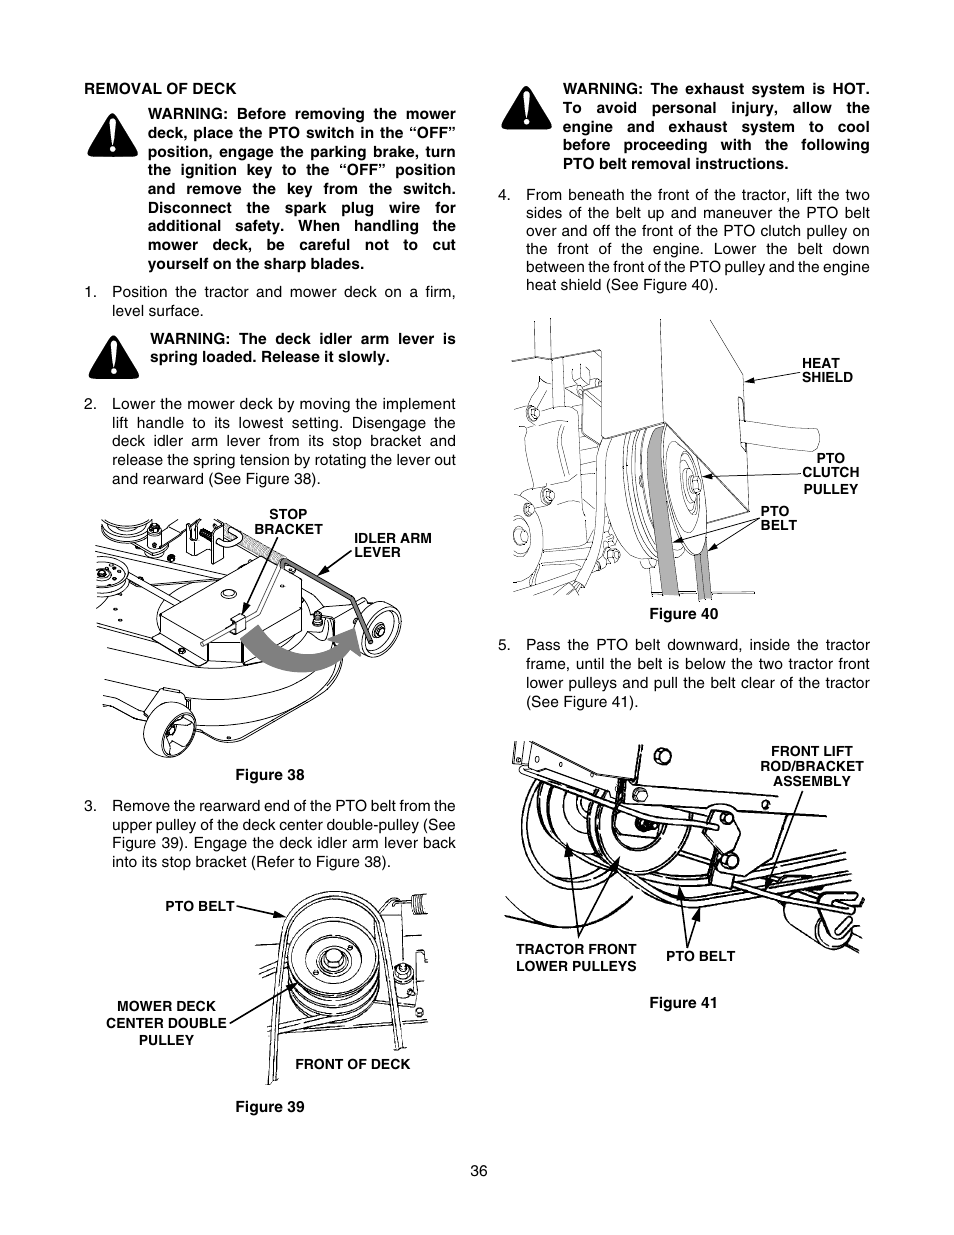 1993 Ford Tempo Stereo Wiring Diagram | Wiring Diagram  Ford Tempo Radio Wiring Diagram on 1993 nissan altima radio wiring diagram, 1993 lincoln town car radio wiring diagram, 2005 ford f250 radio wiring diagram,